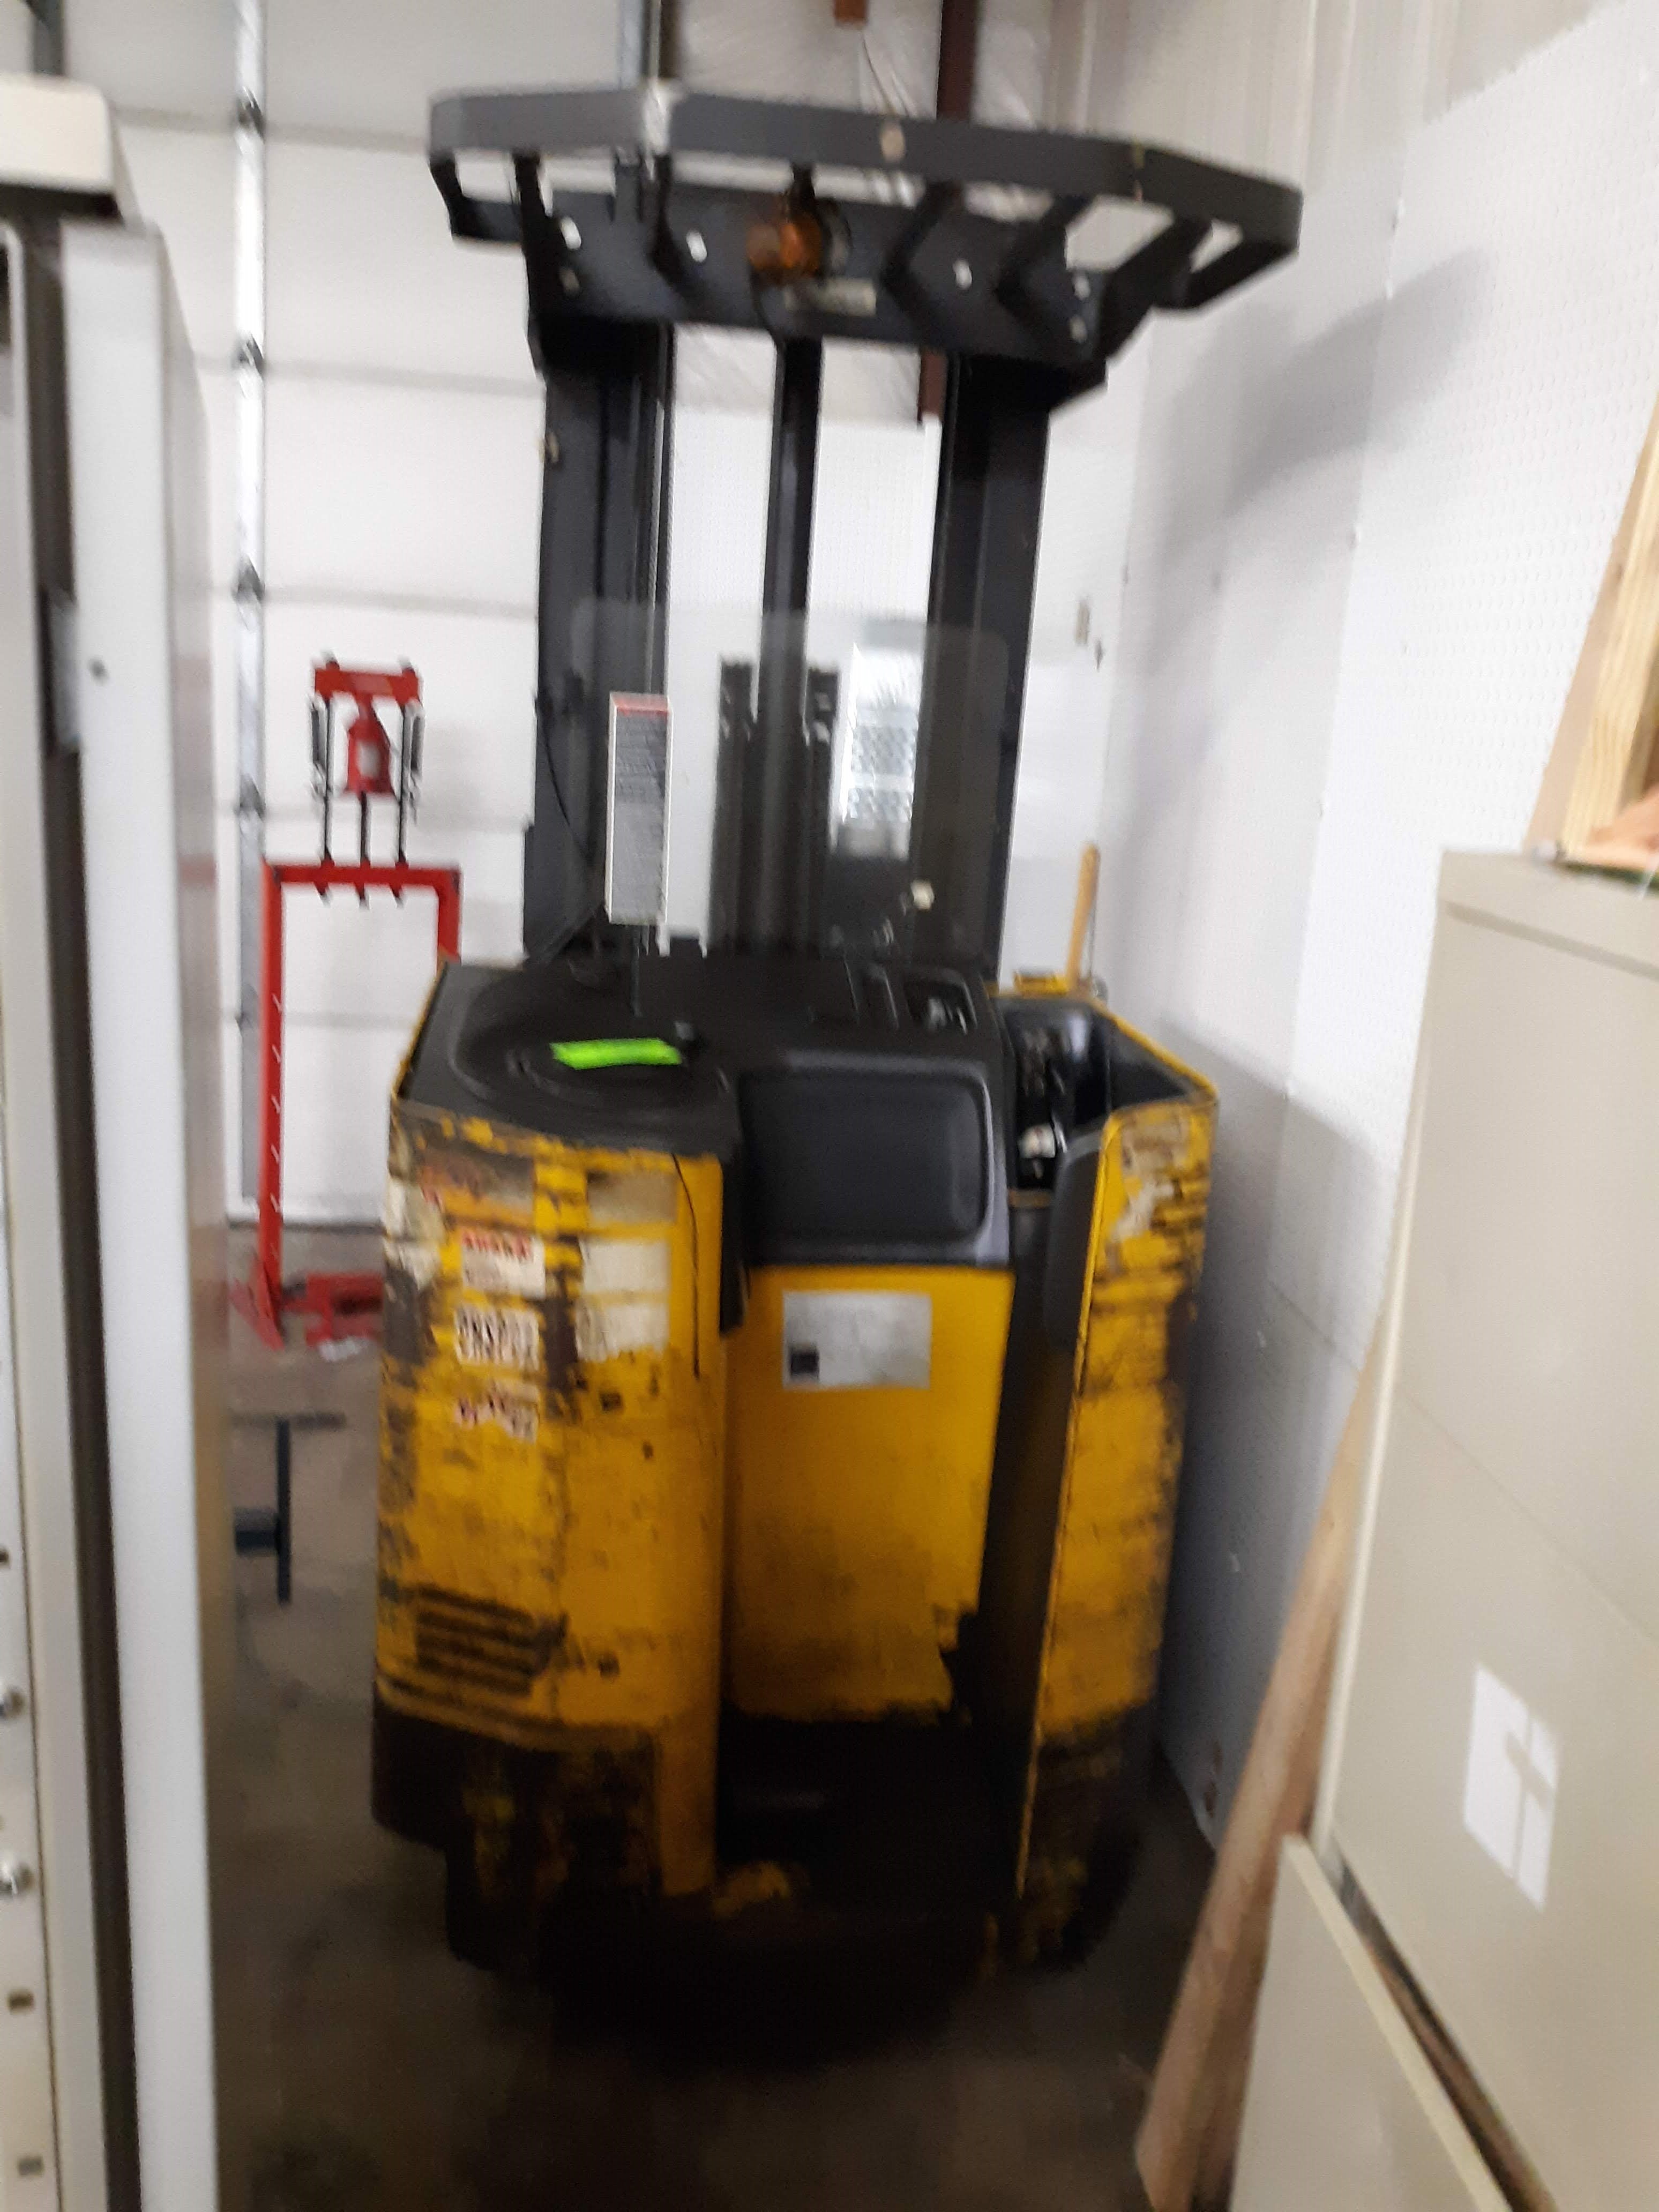 RAYMOND STAND UP FORK TRUCK (NEEDS BATTERY) MODEL-EASI S#EZA-93-00283 36VOLT 4,500 LB. CAPACITY ( - Image 2 of 7